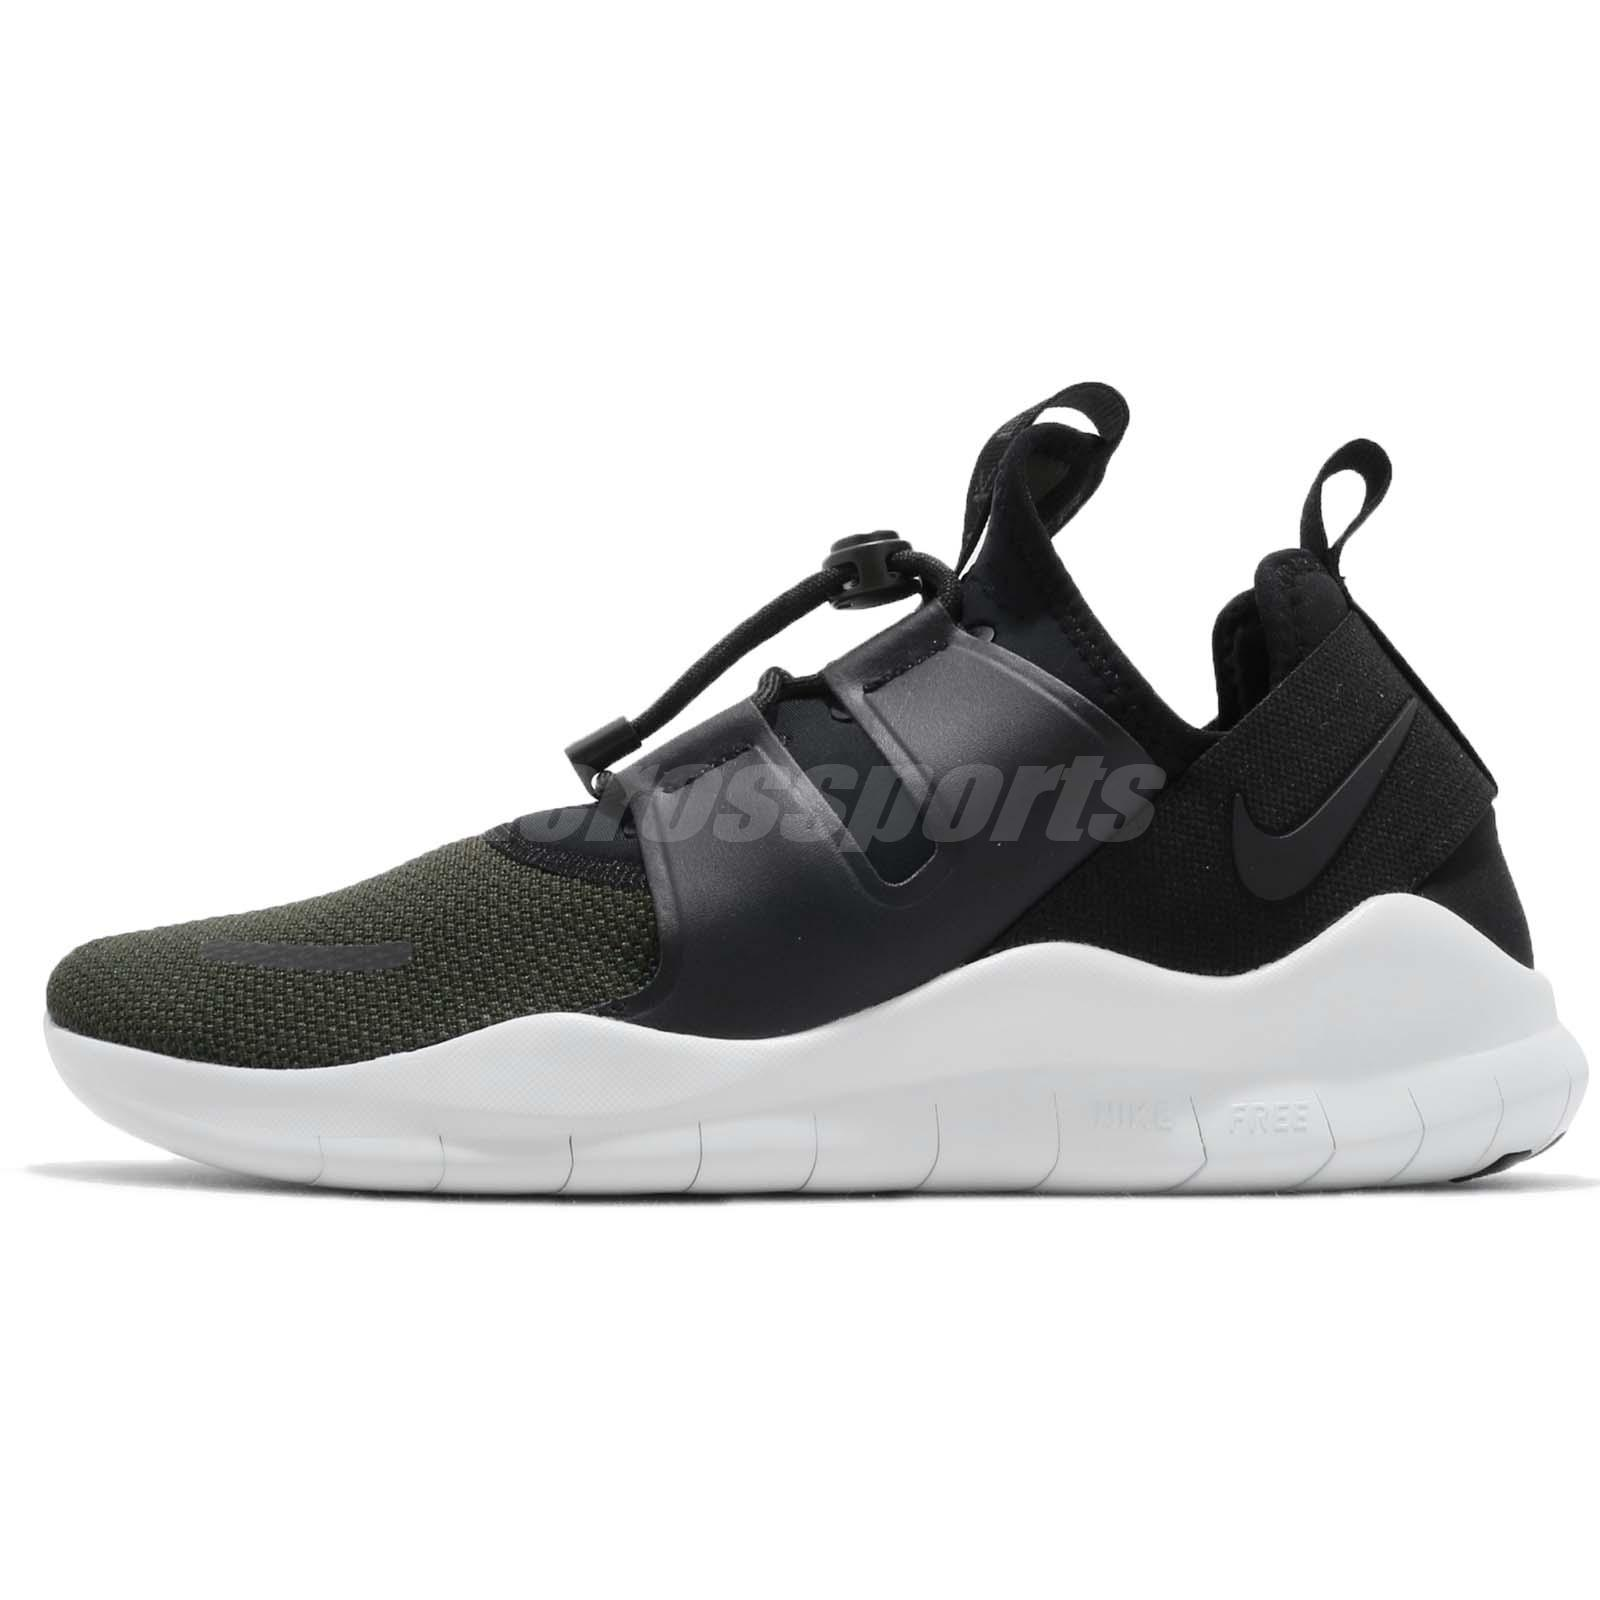 57041e0ff0d2 Nike Free RN CMTR 2018 PRM Run Black Sequoia Men Running Shoe Sneaker  AJ8308-003